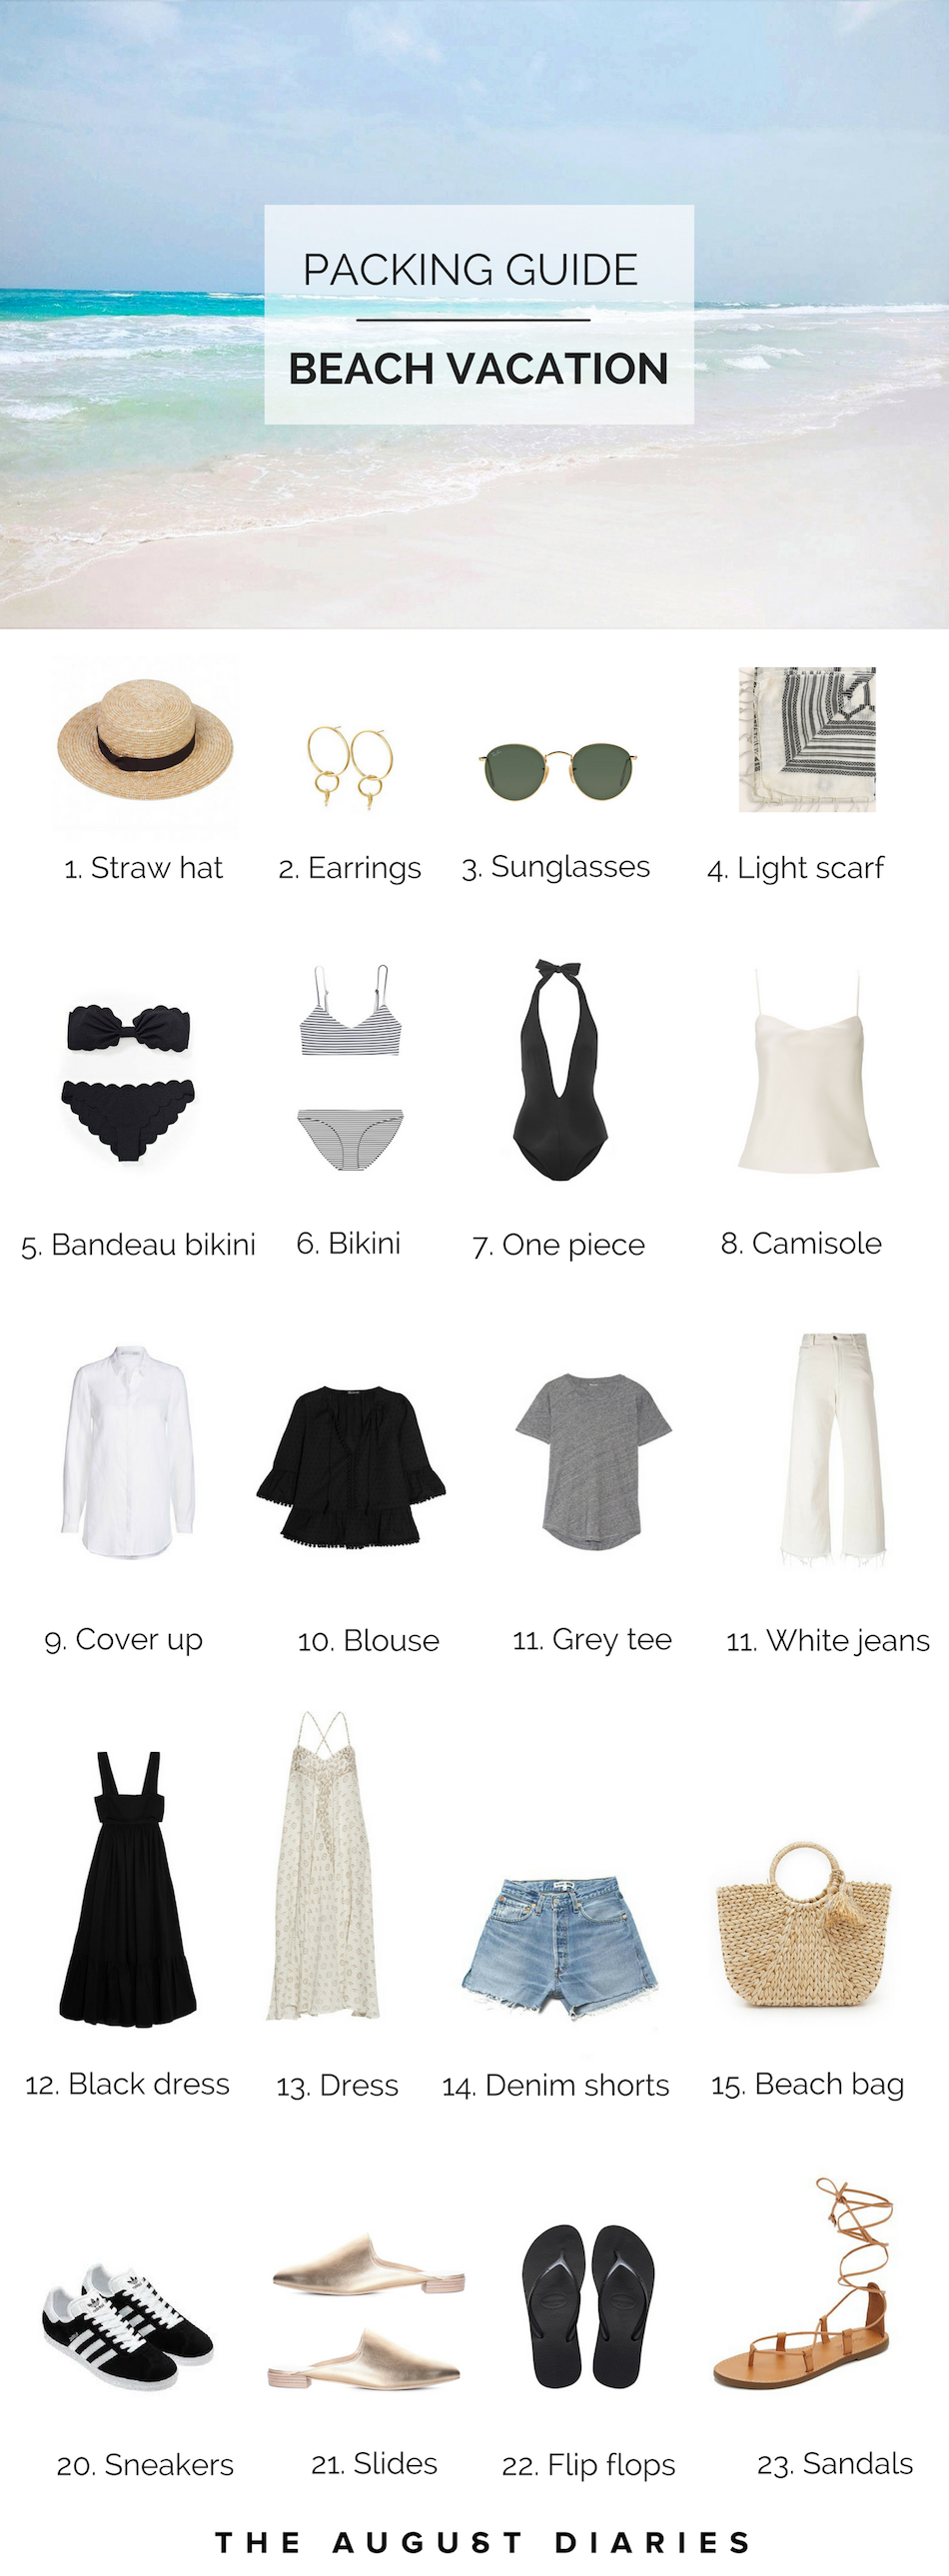 beach vacation packing guide list